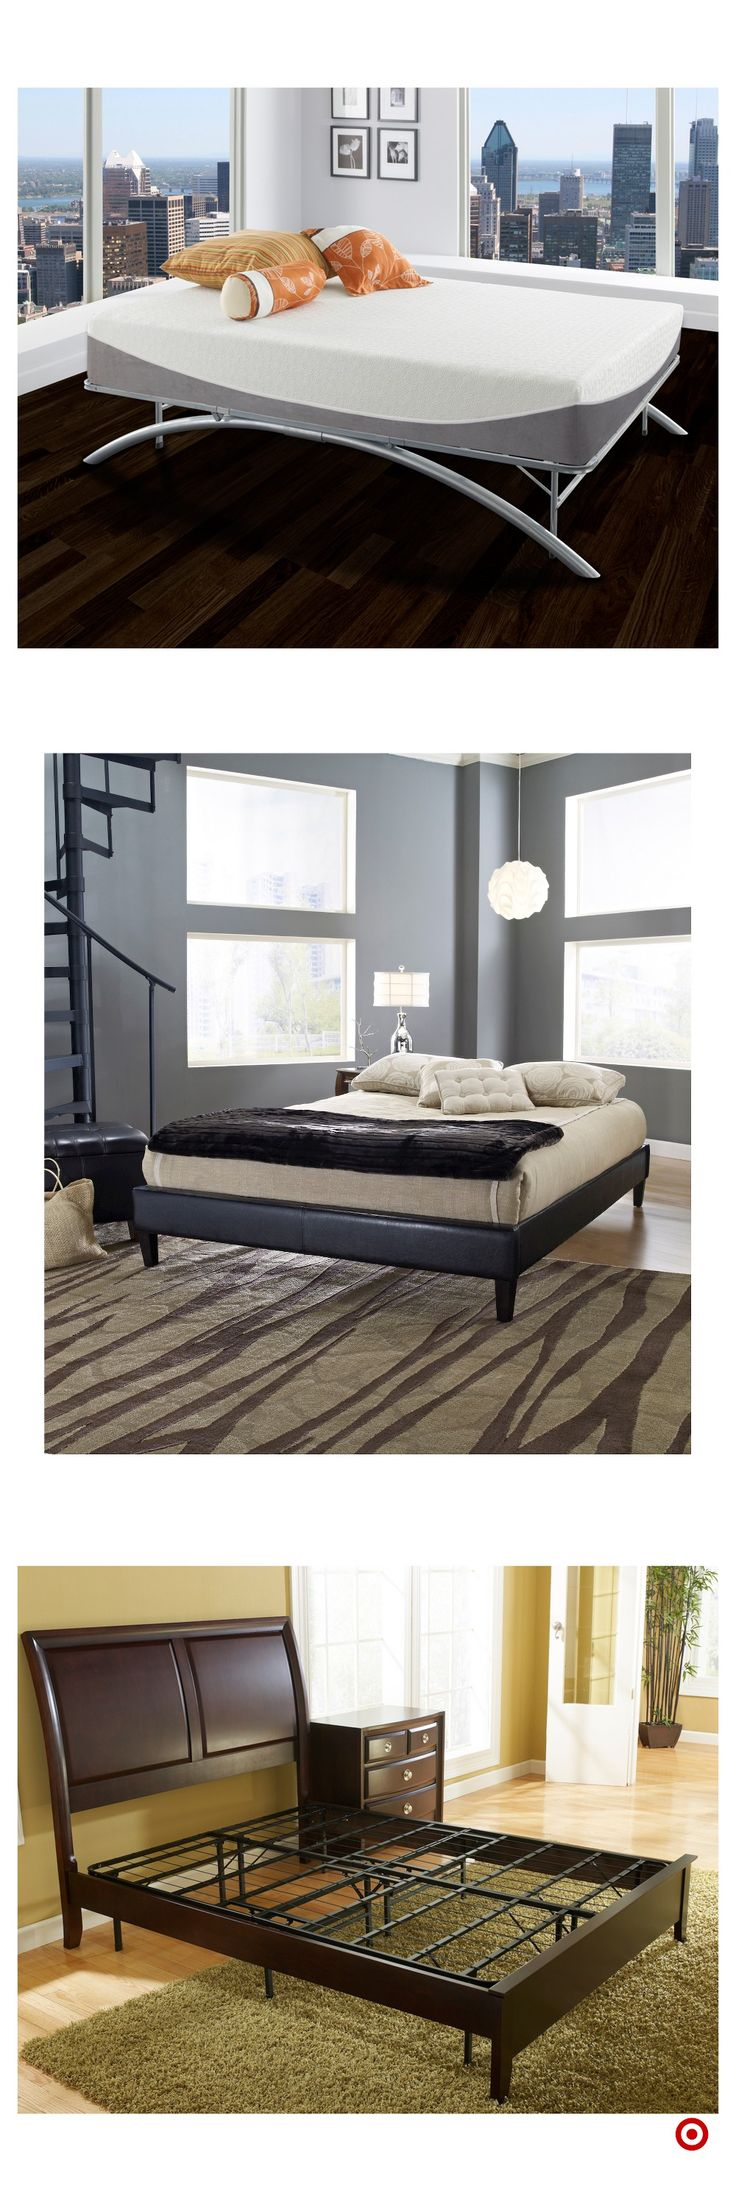 Shop Target for bed frame you will love at great low prices. Free shipping on orders of $35+ or free same-day pick-up in store.